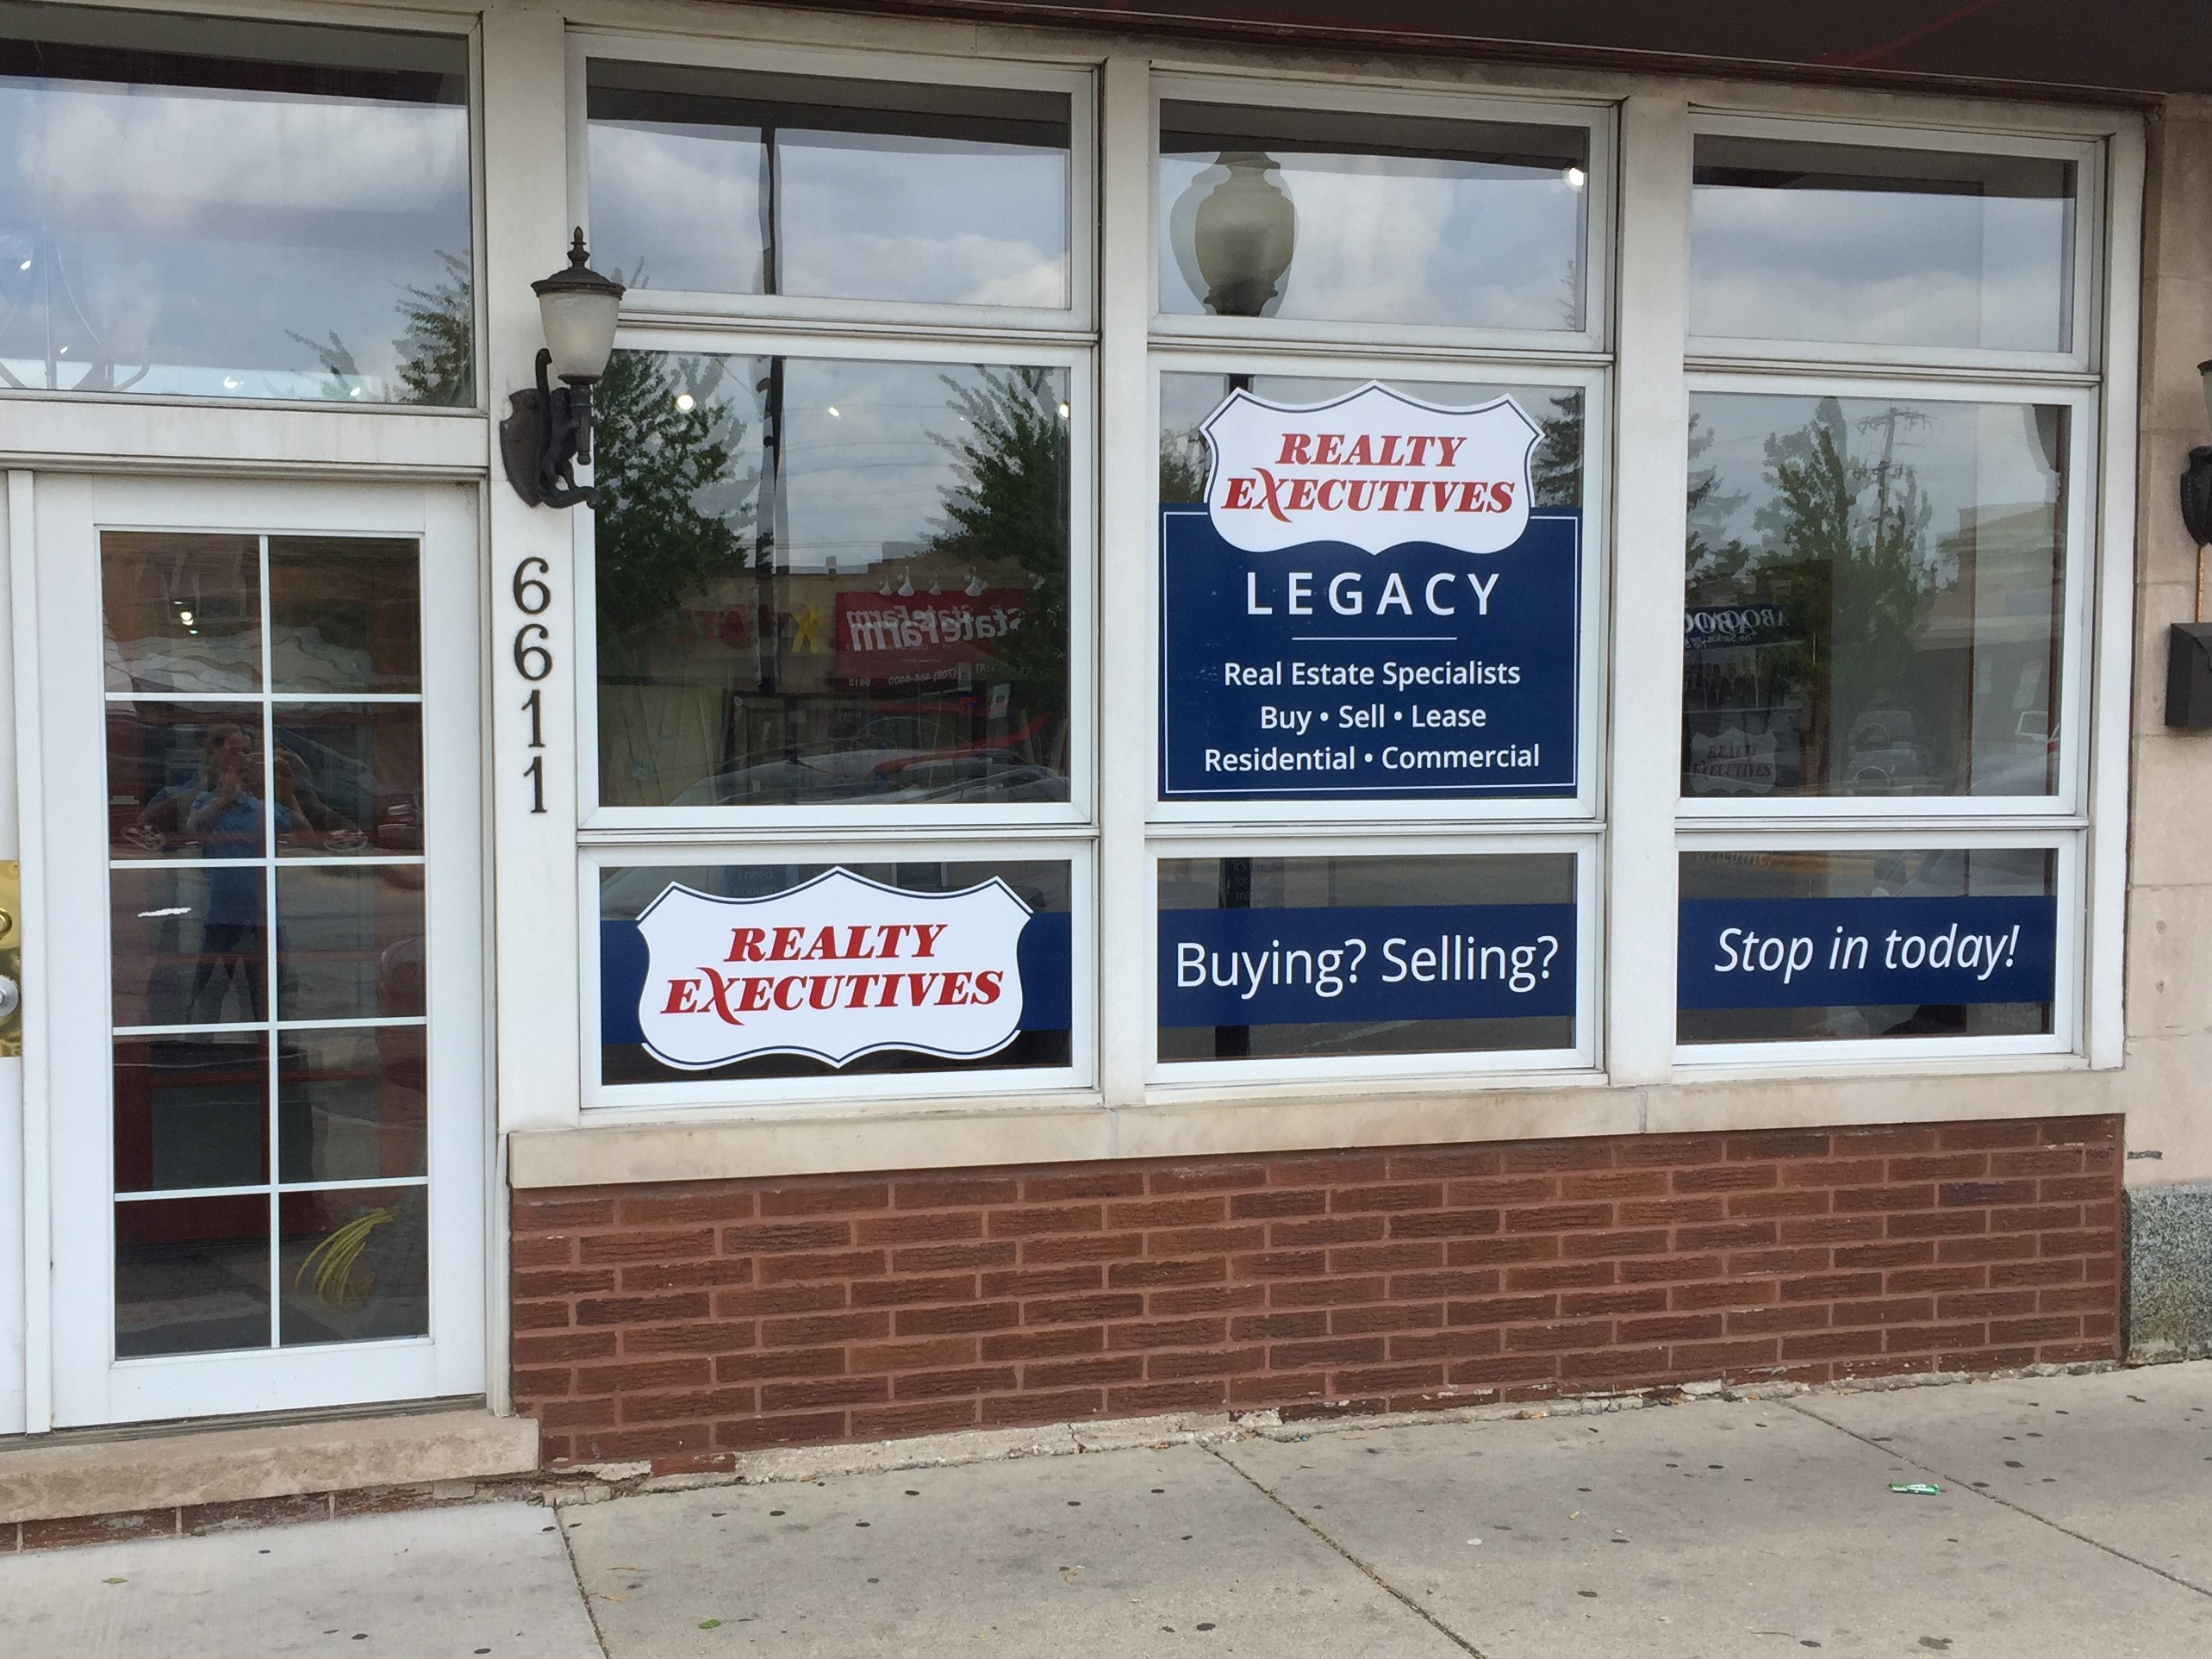 Realty Executives Legacy (Berwyn)